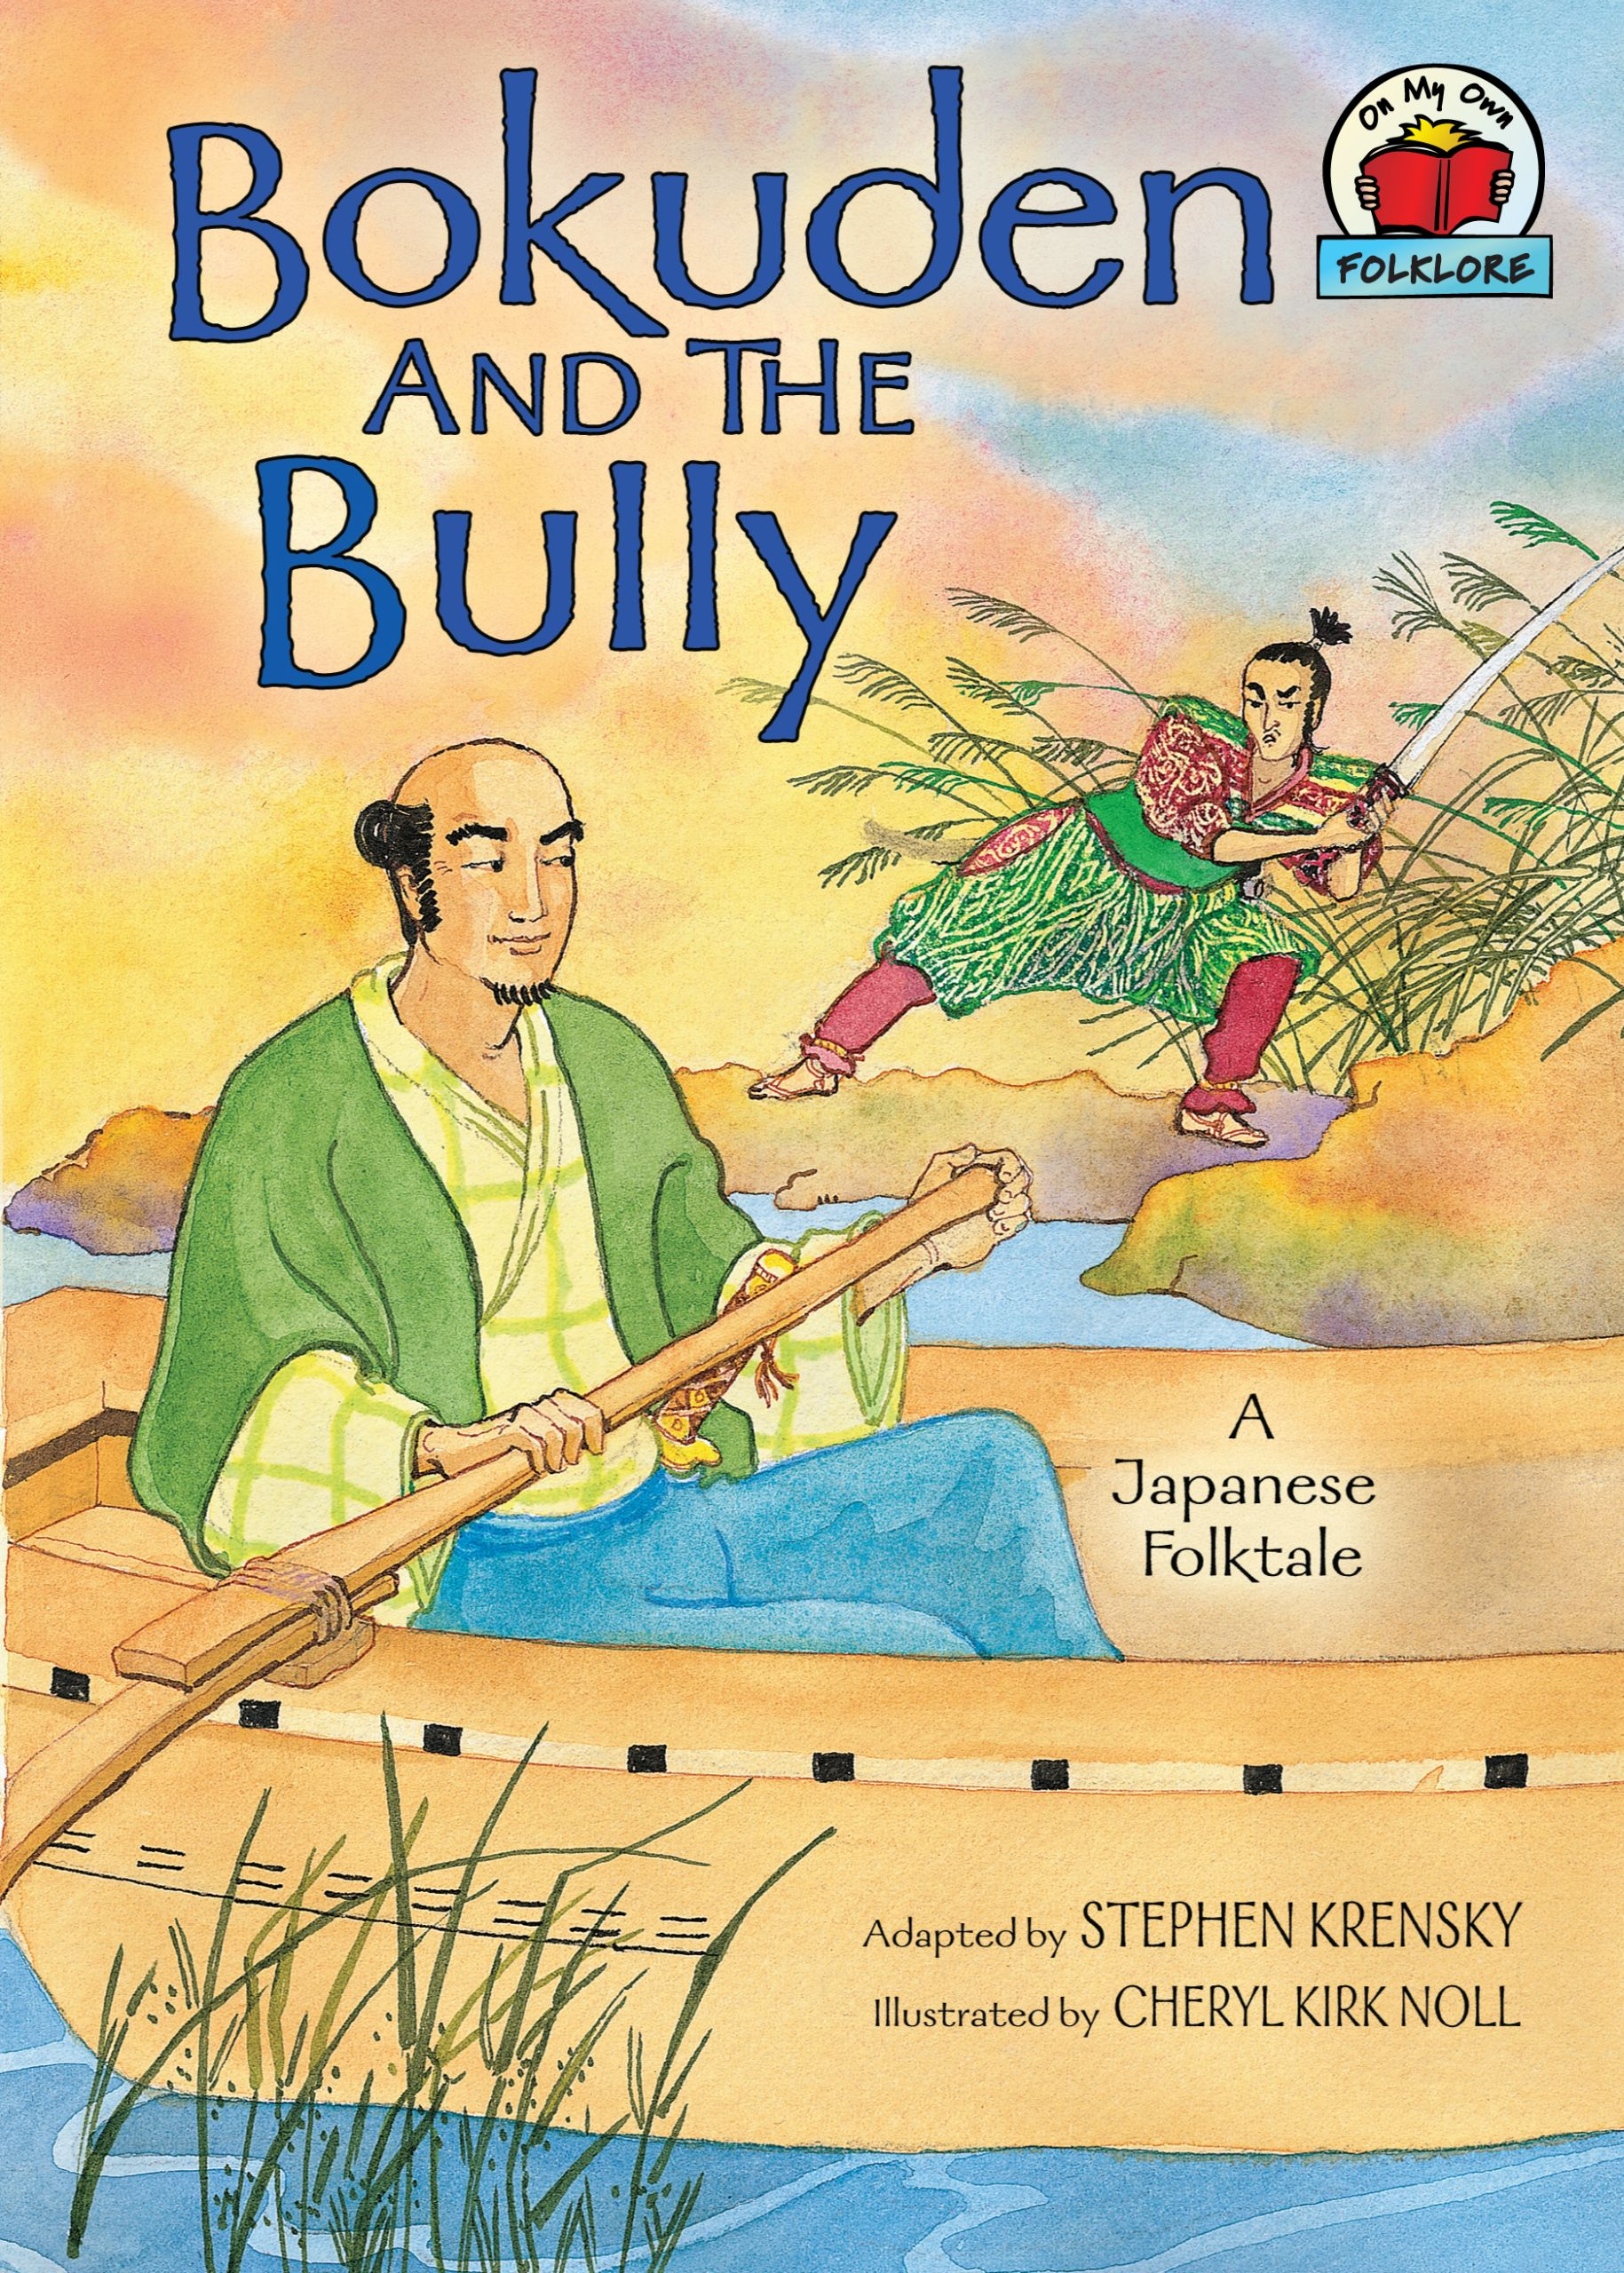 Bokuden and the Bully (A Japanese Folktale)